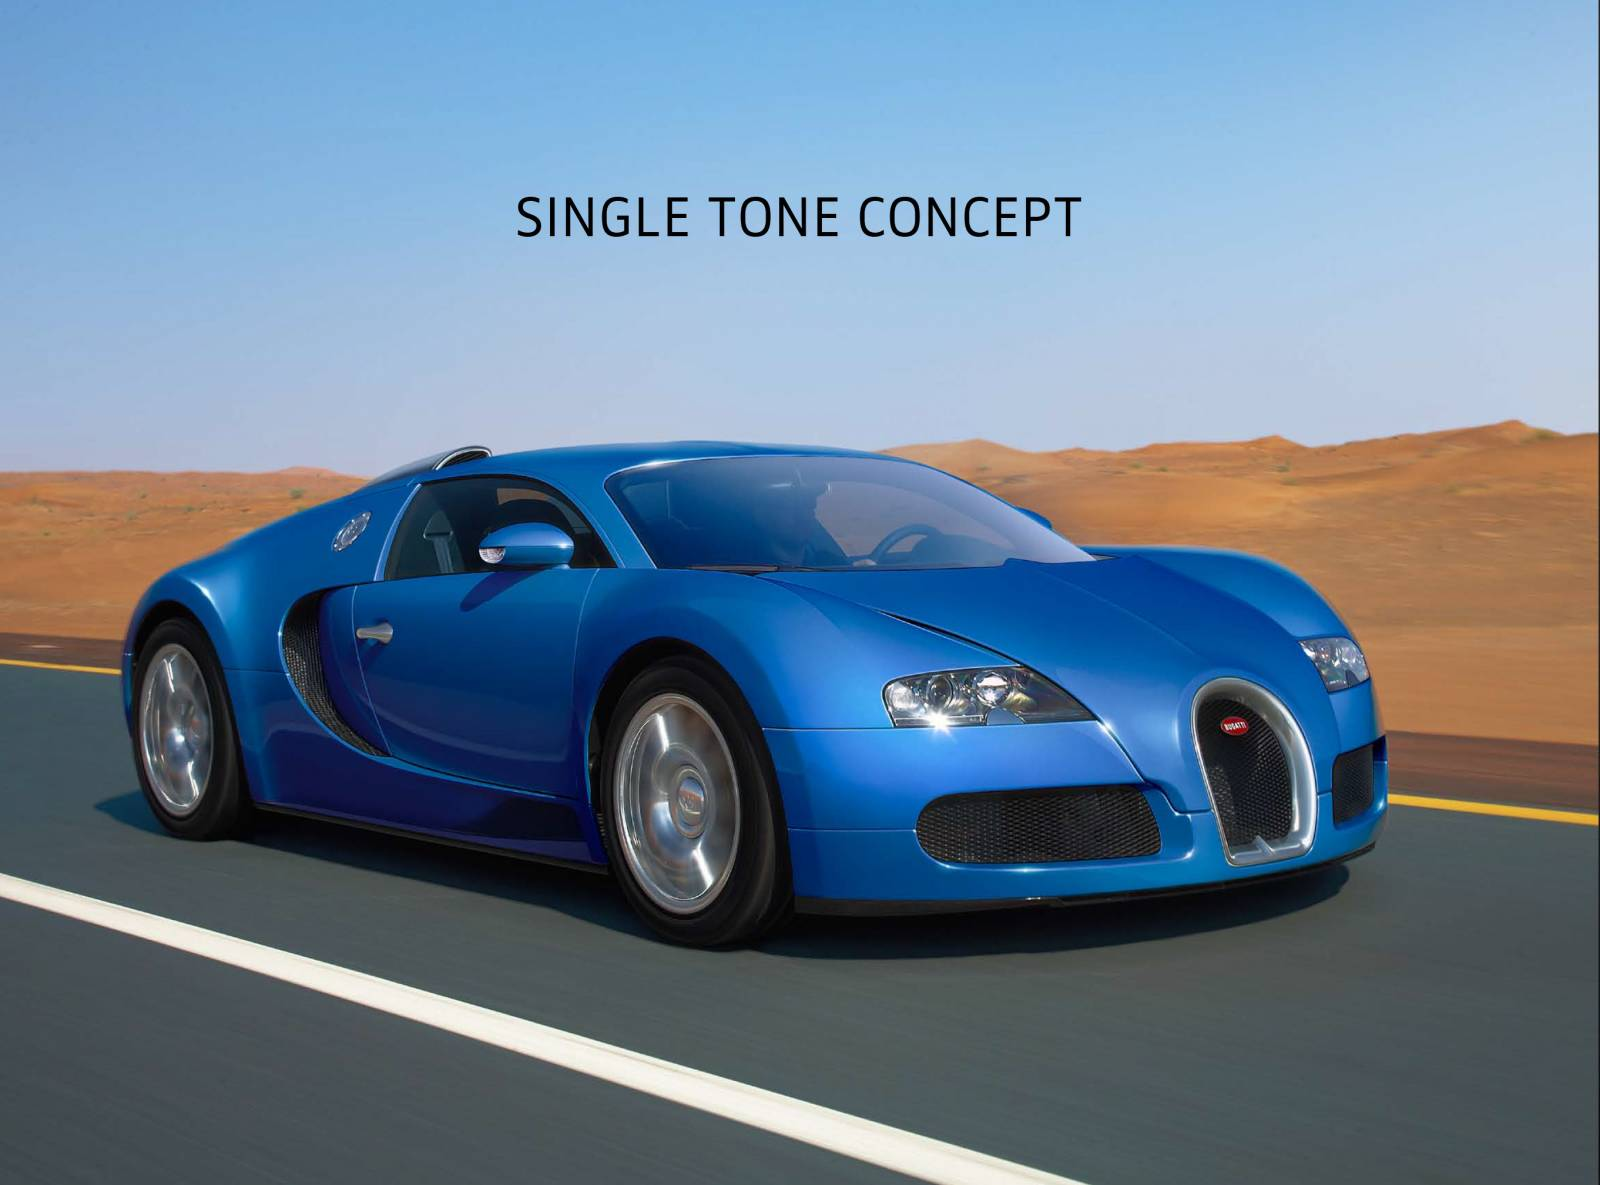 ETPTT, Bugatti, image editing, retouching, dtp, layout, final artwork